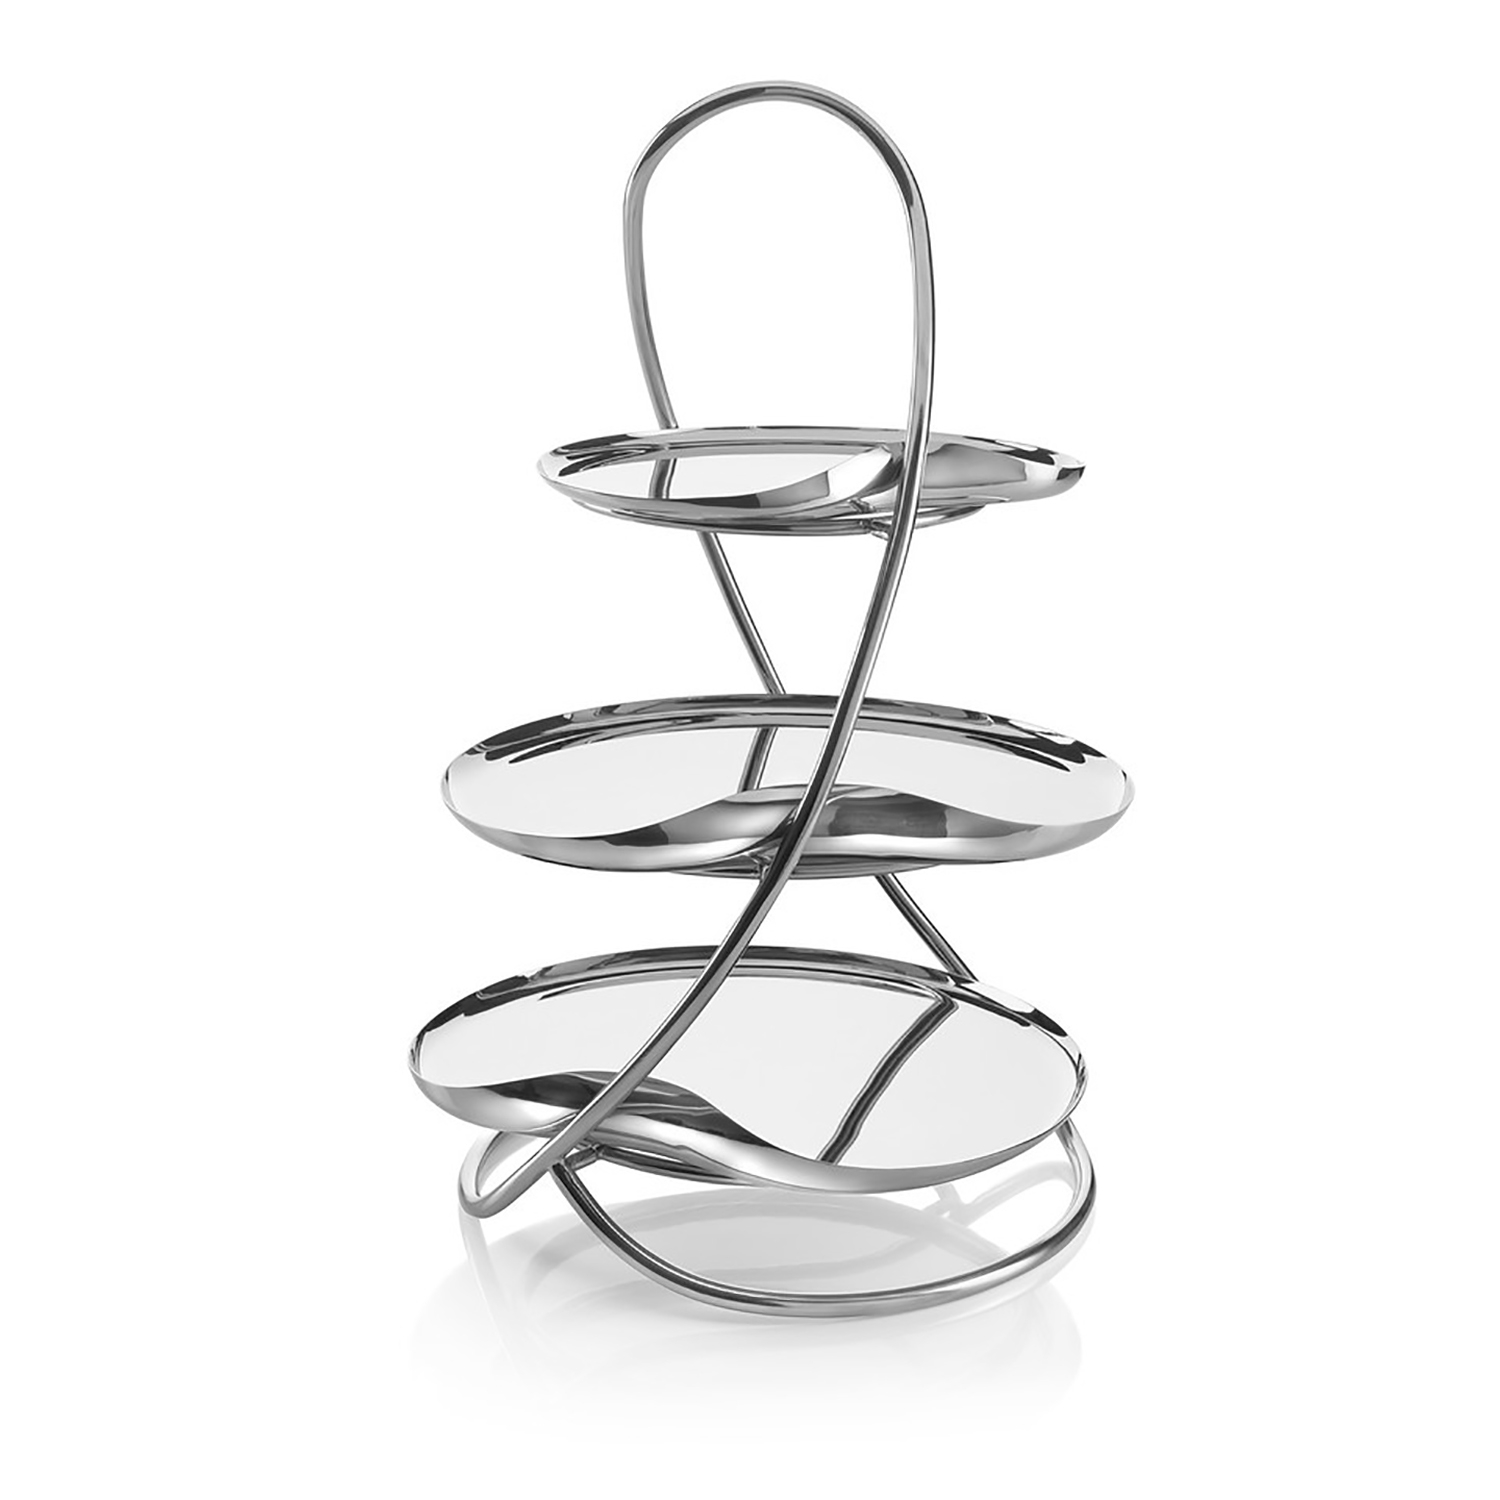 Image of Drift Cake Stand and Trays